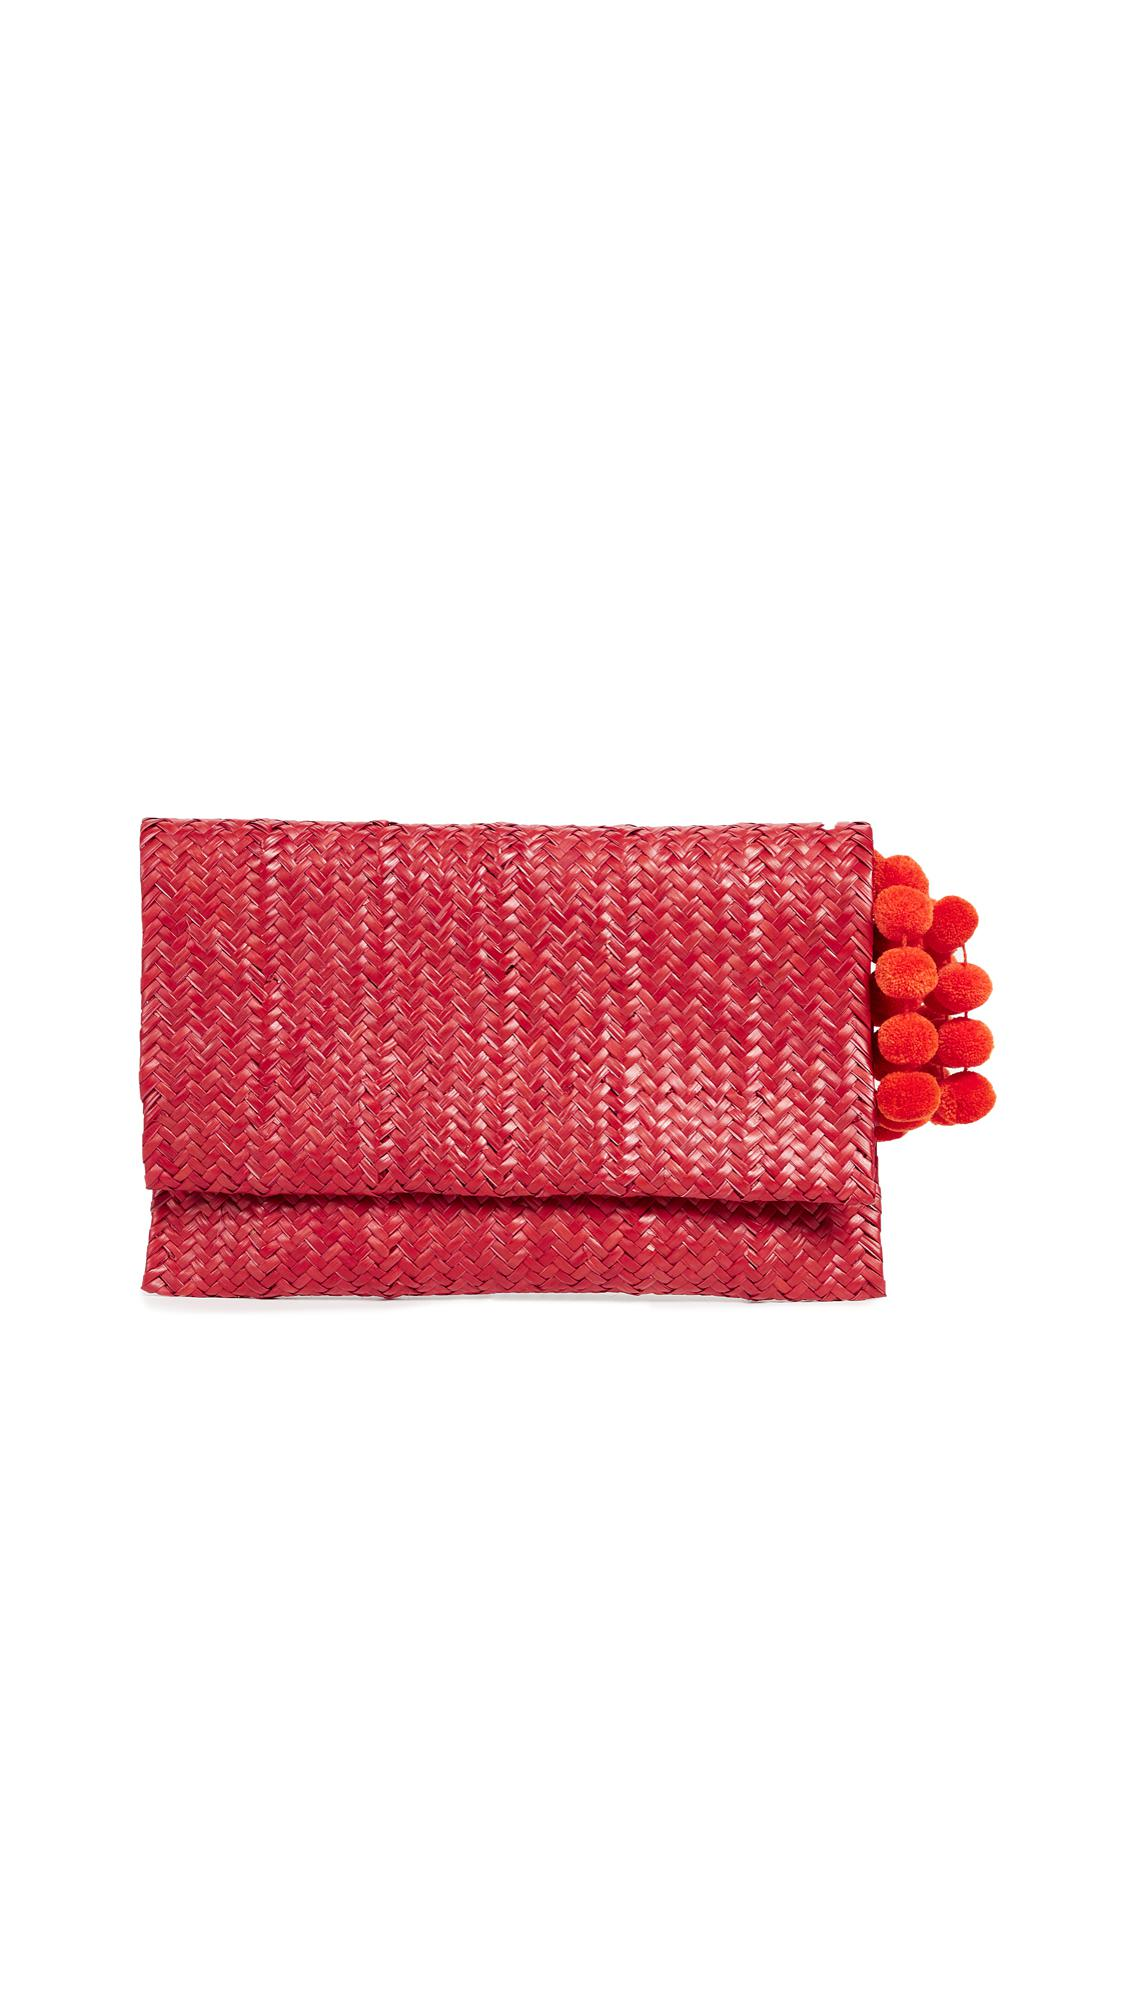 94ce1ba422 Lyst - Nannacay Amaryllis Clutch in Red